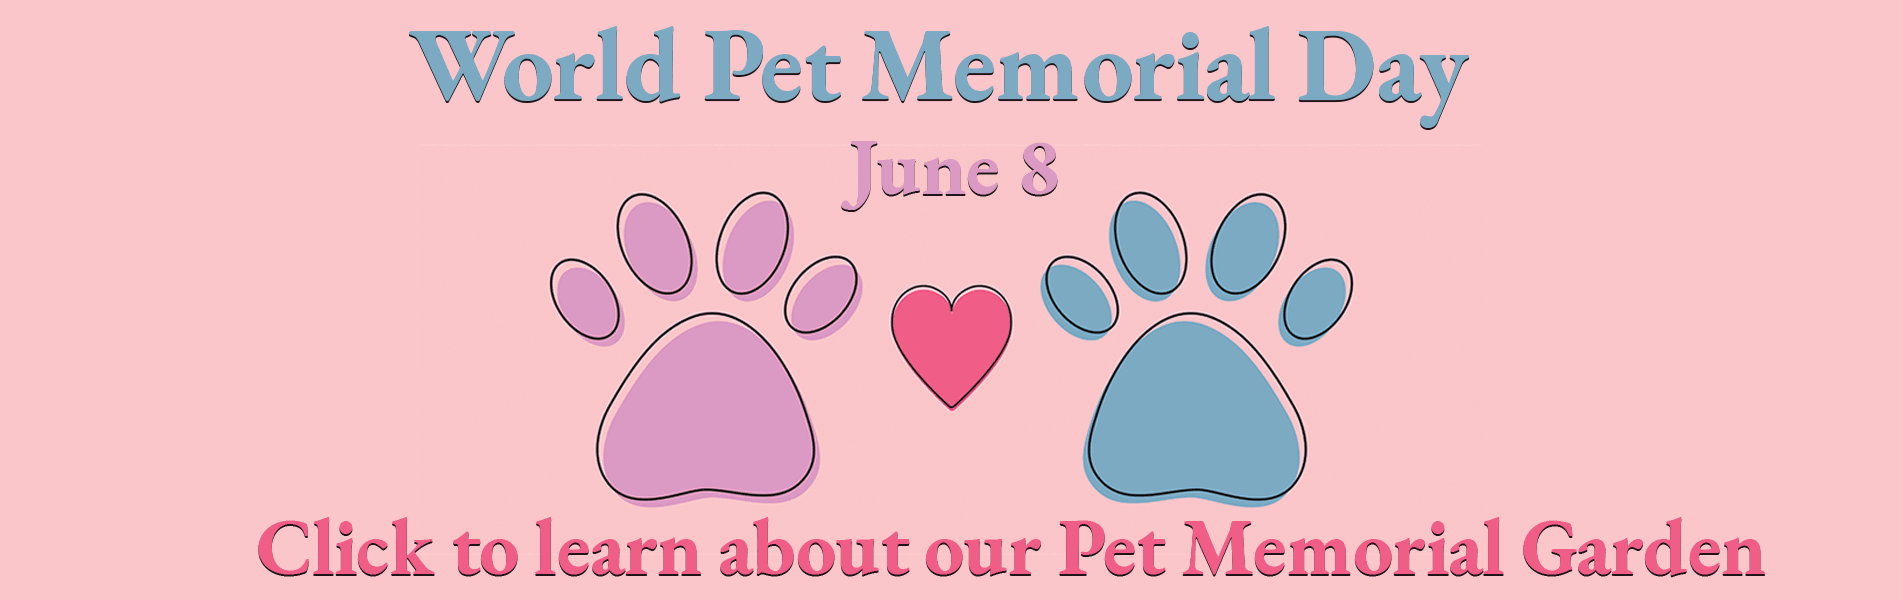 June 8 is world pet memorial day. Click to learn about our Pet Memorial Garden